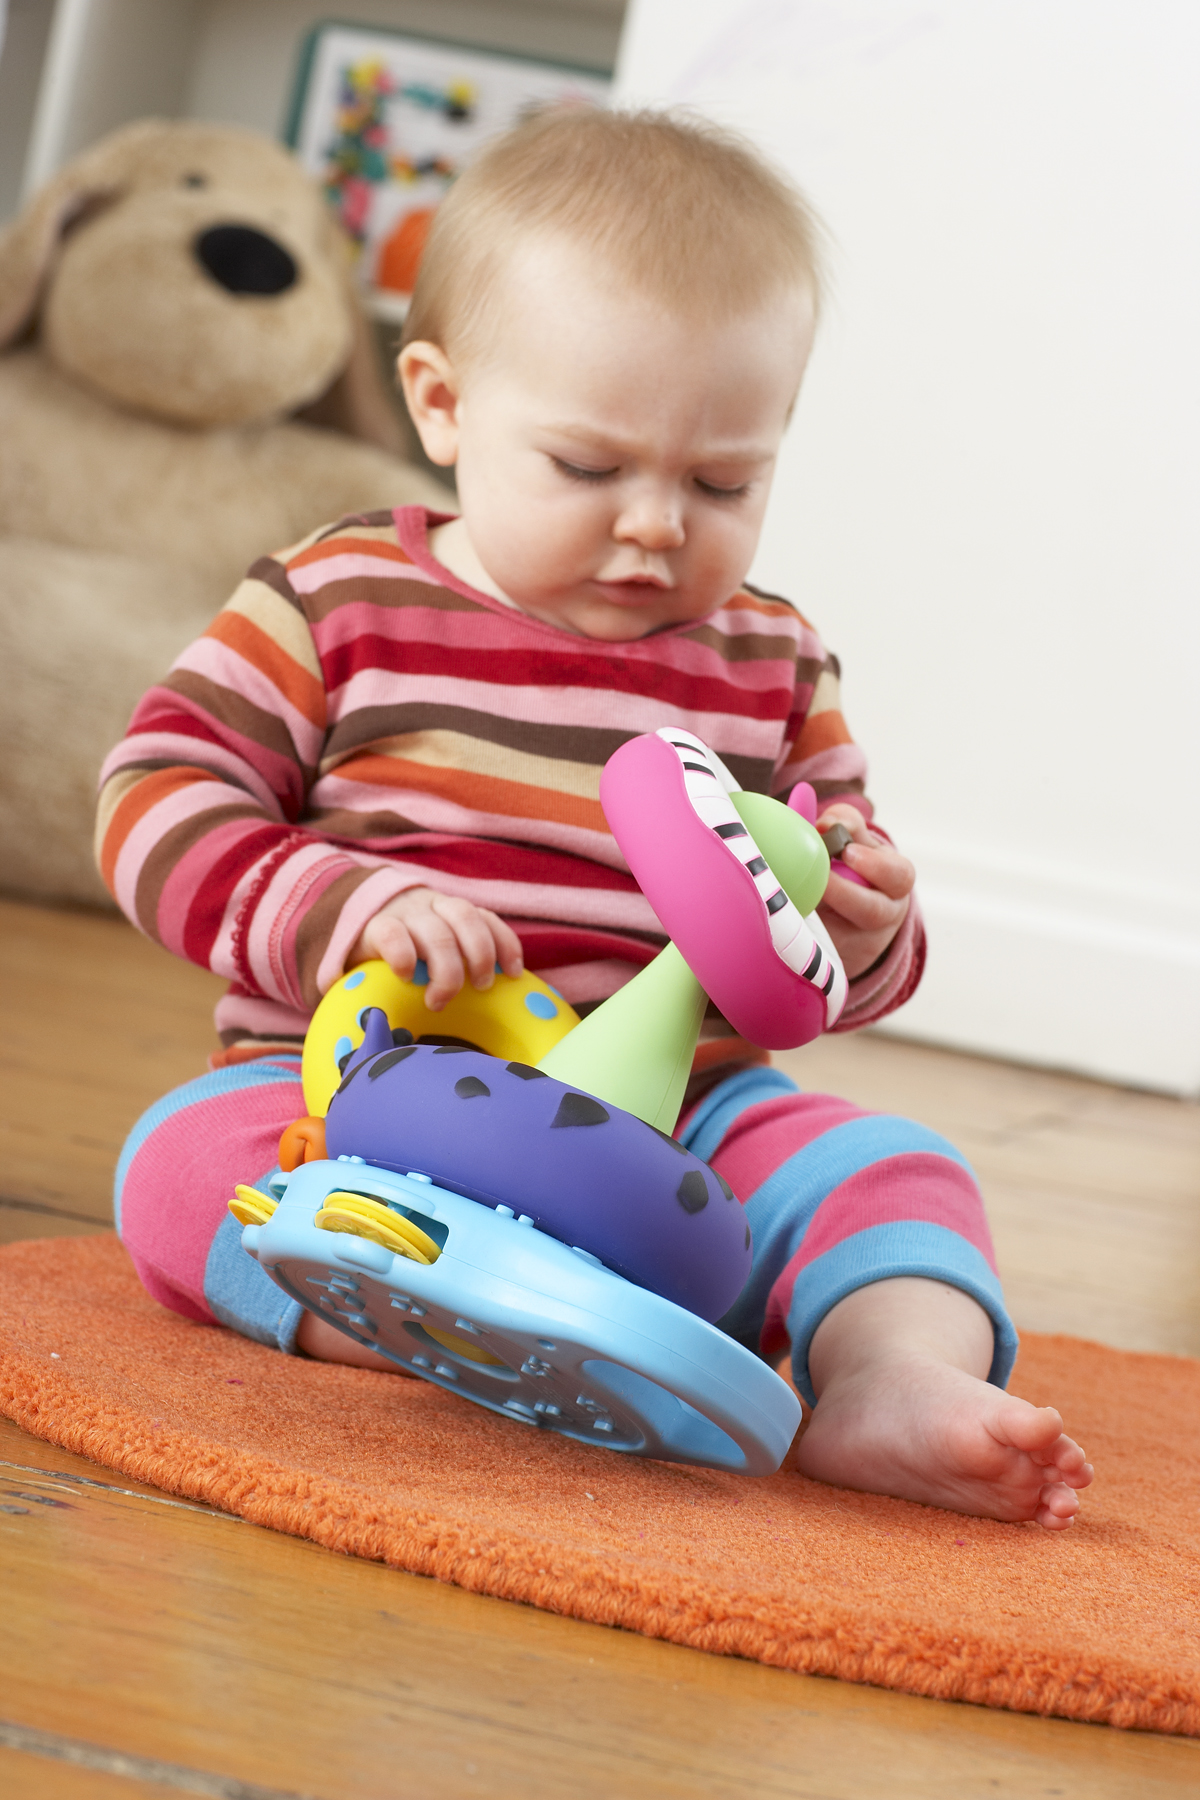 Baby Toy Buying Guide